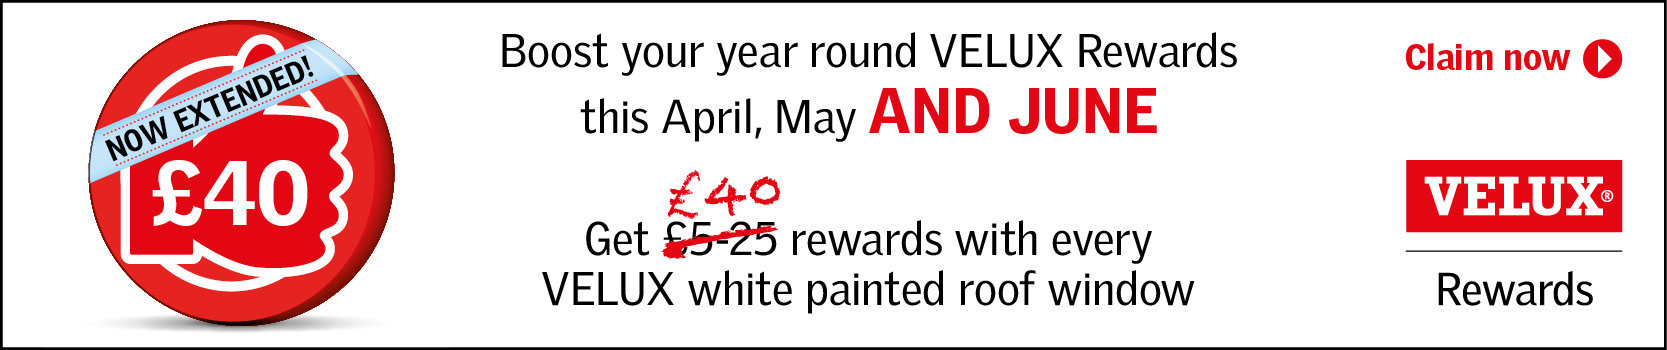 Velux Summer 2019 Promotion | About Roofing Supplies